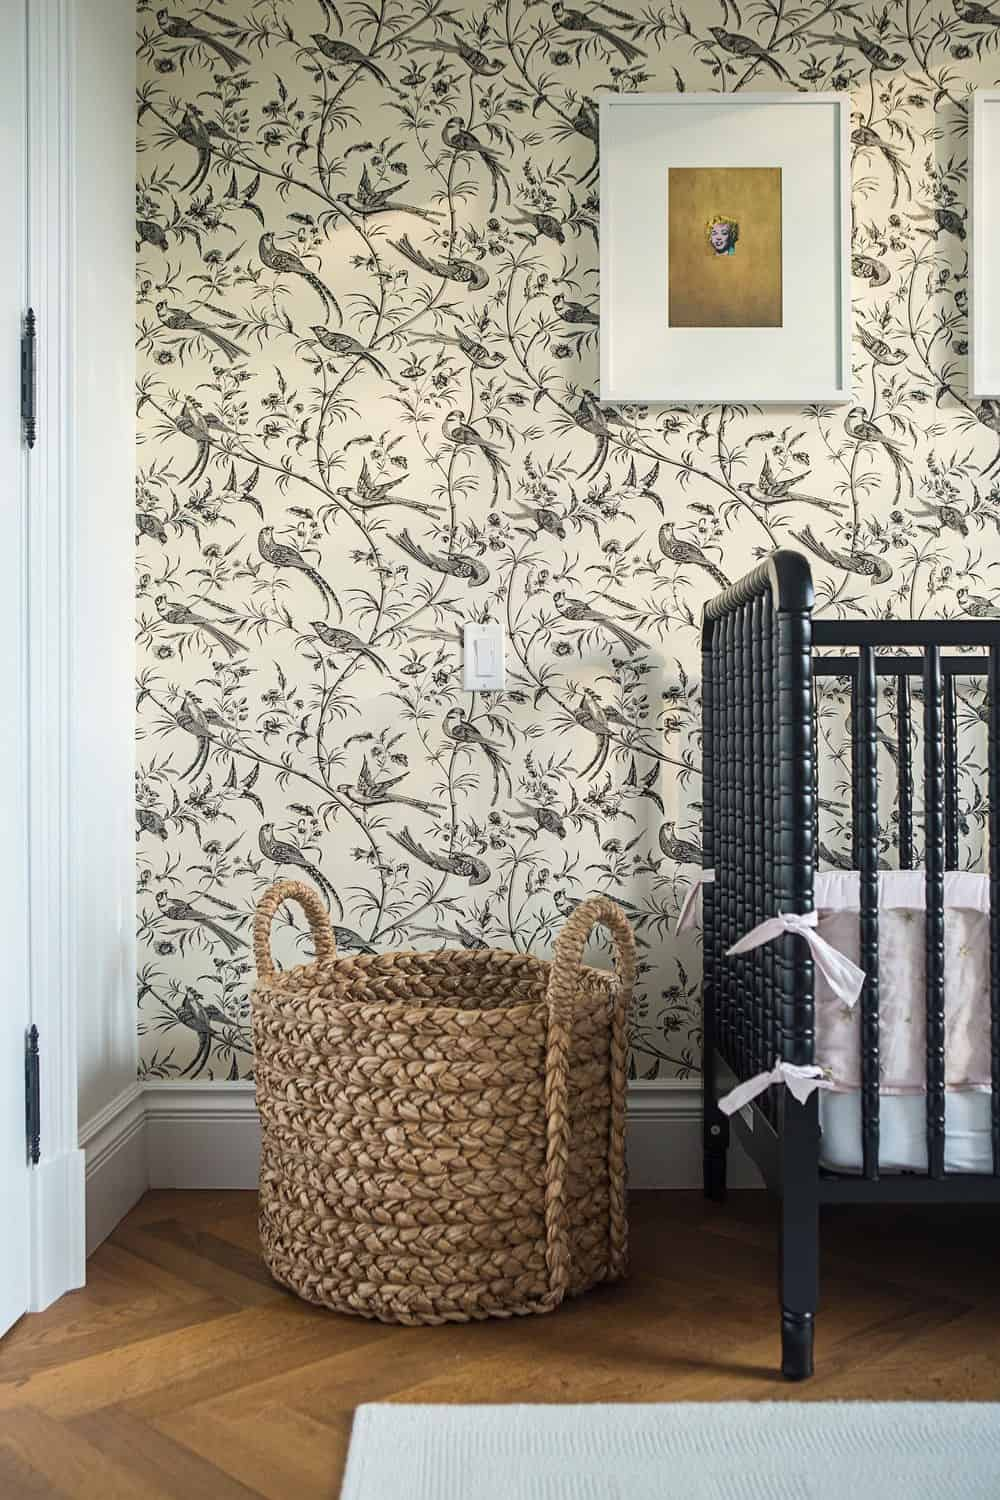 Another look of the nursery room focusing on its beautiful wall and hardwood flooring topped by a rug. Photo credit: Erik Rotter